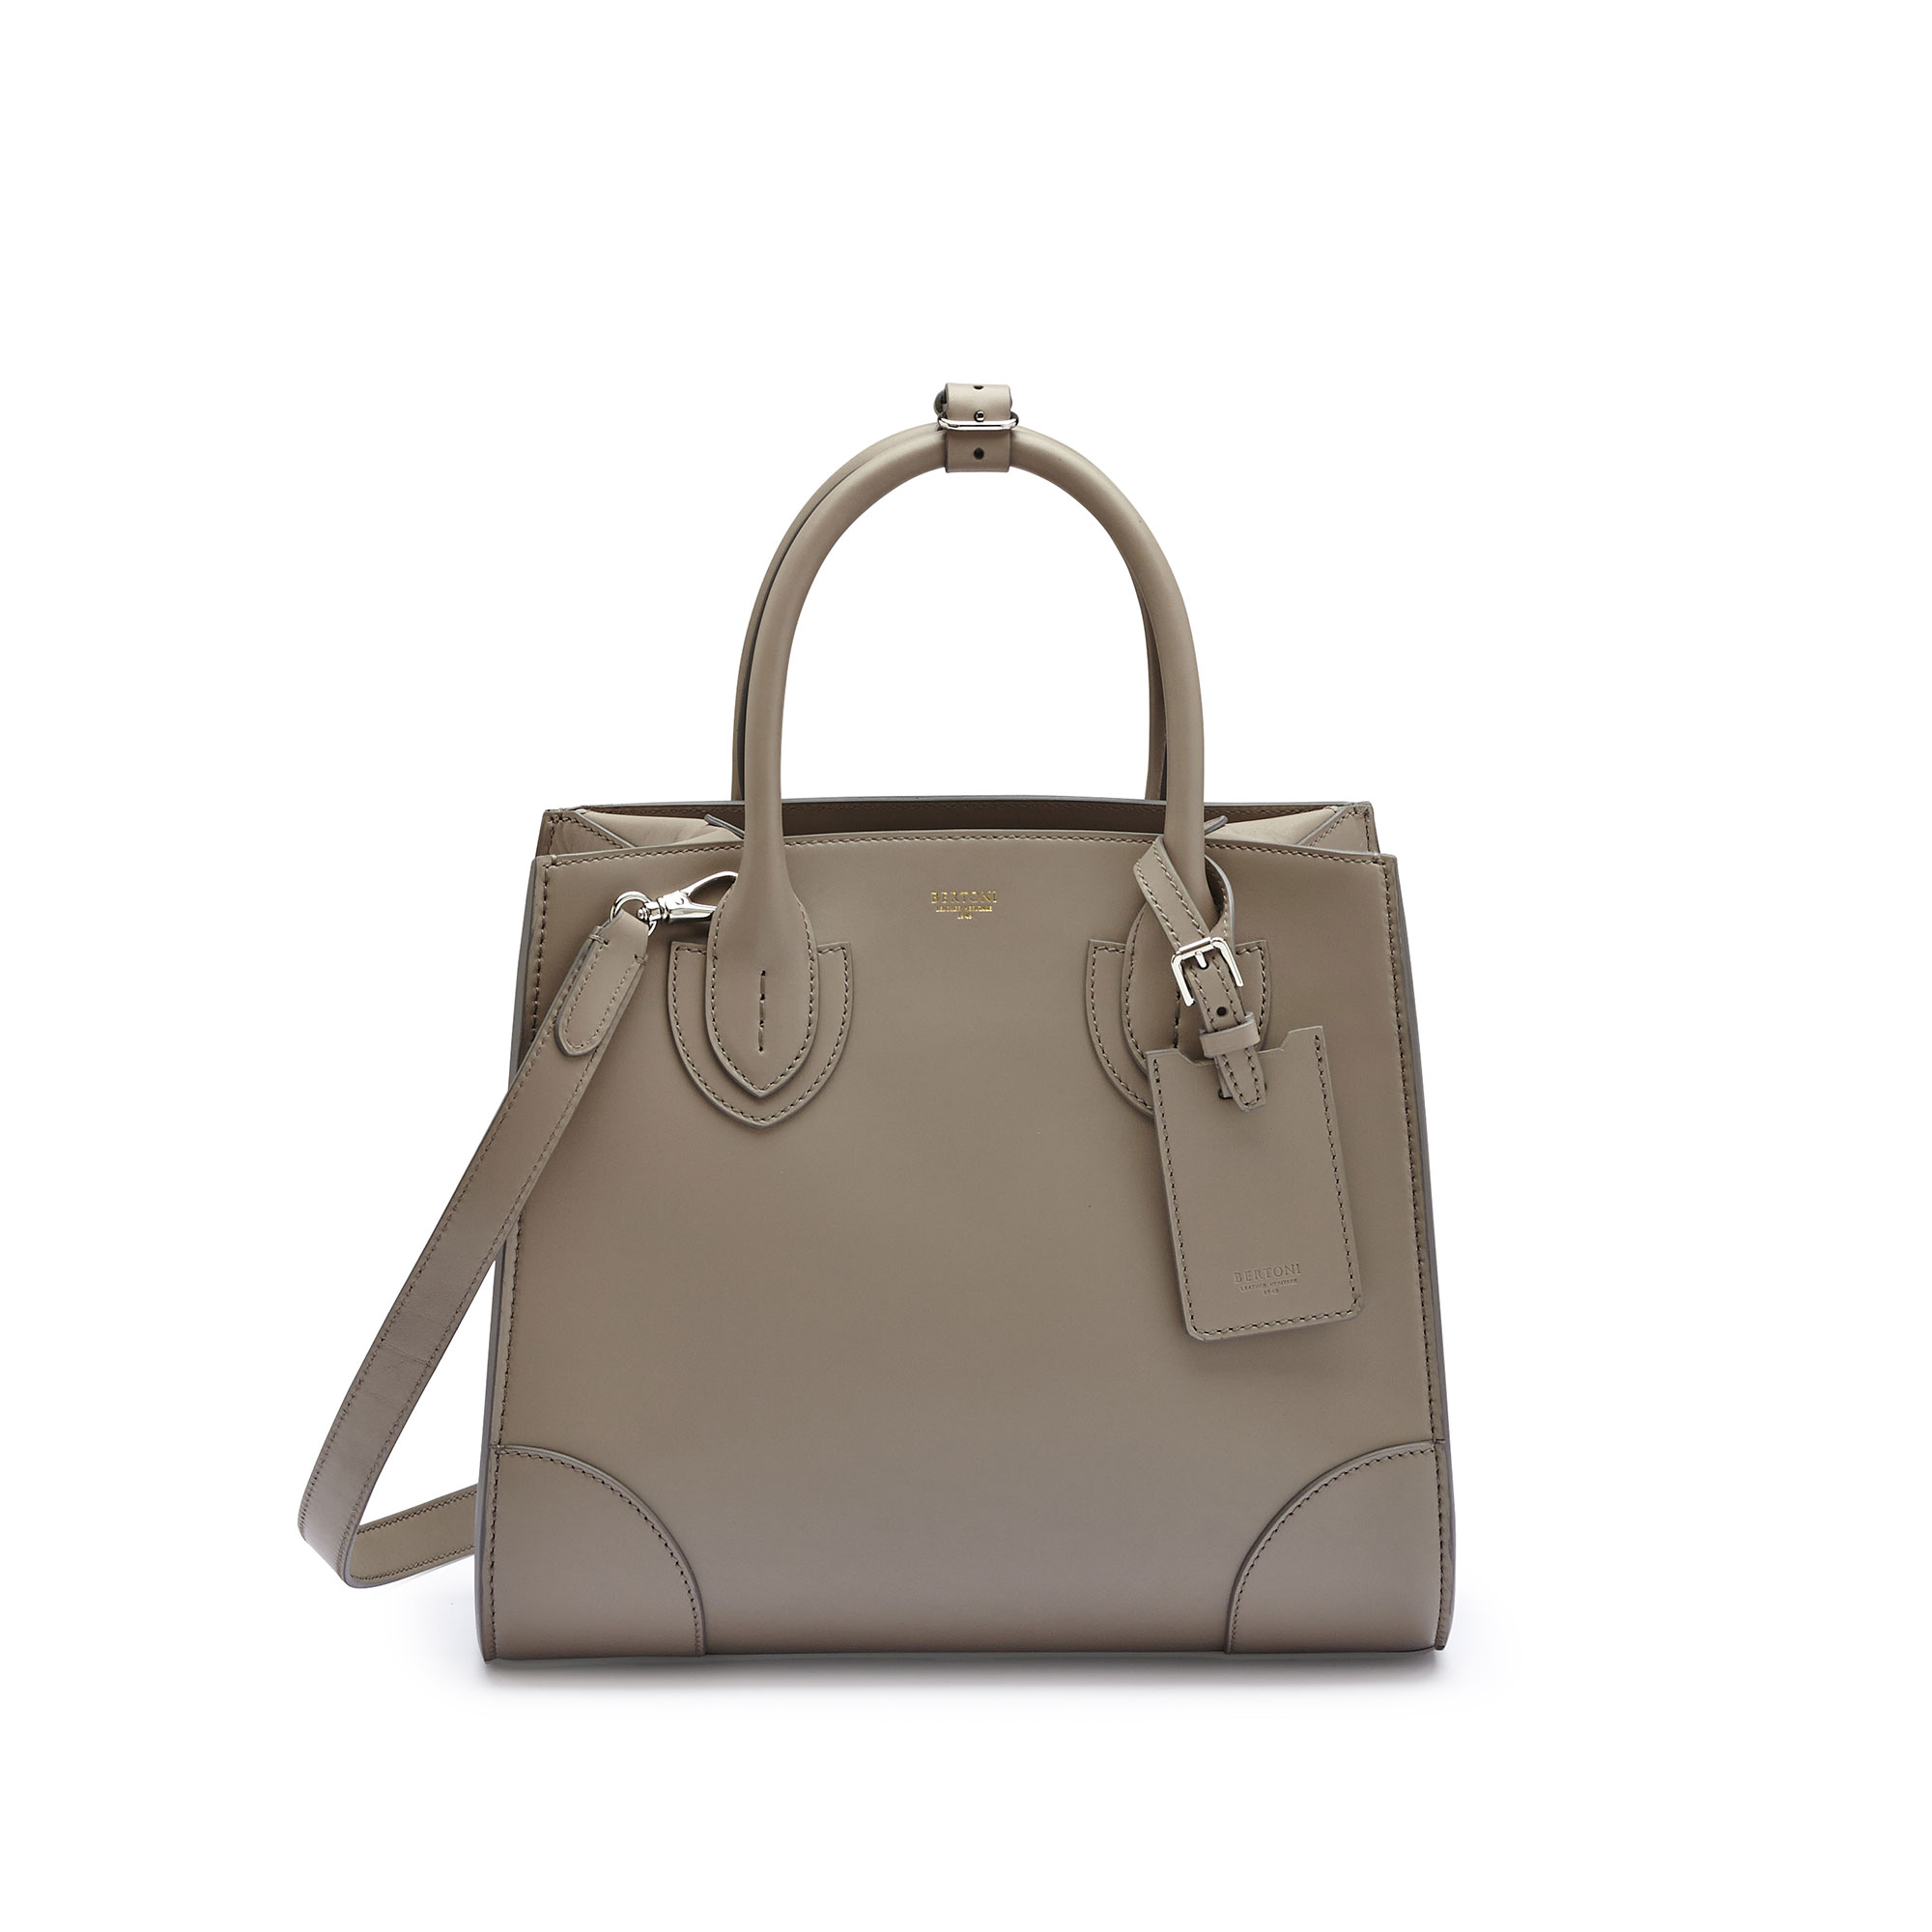 The taupe french calf Darcy medium bag by Bertoni 1949 01